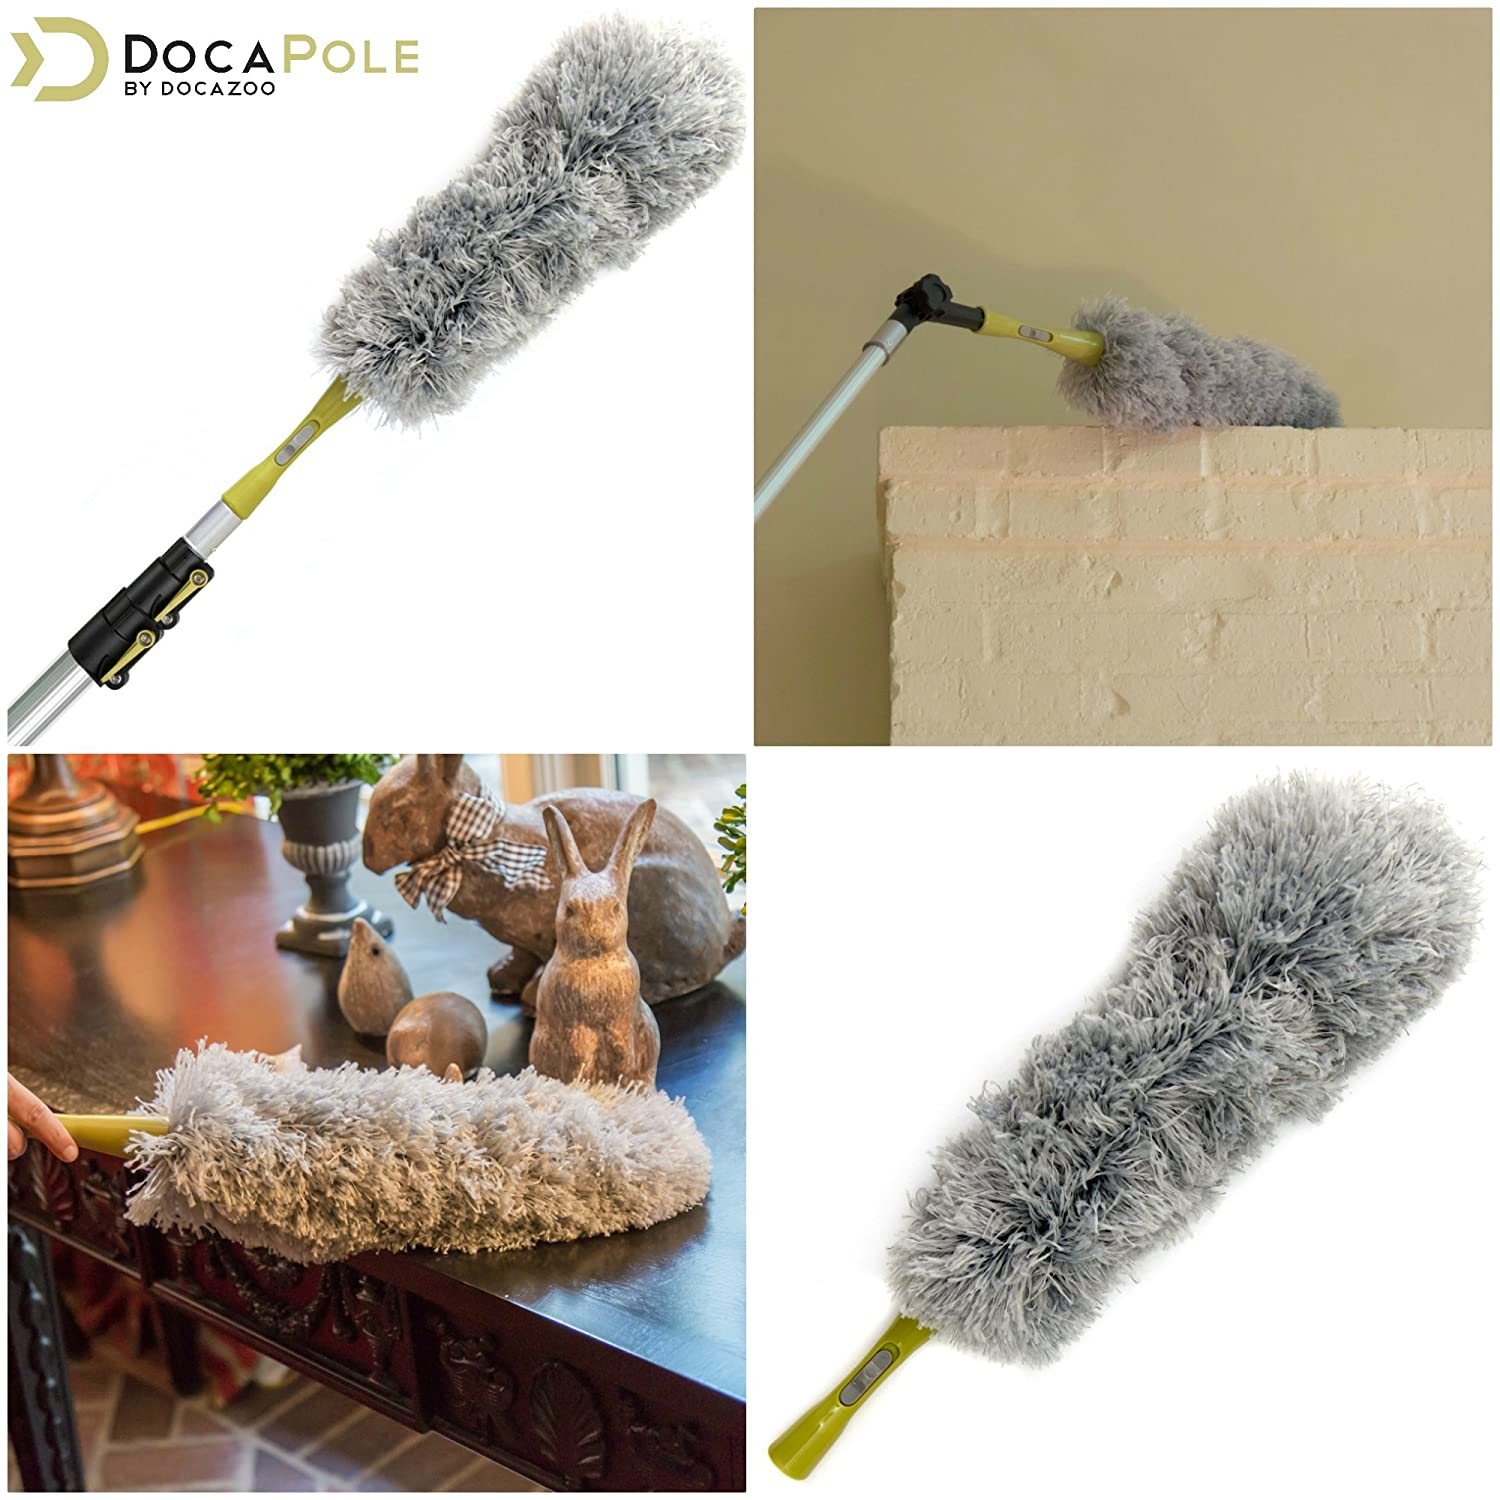 Flexible Chenille Ceiling Fan Duster Cobweb Duster Microfiber Feather Duster DocaPole Dusting Kit for Extension Pole or by Hand Cleaning Kit Includes 3 Dusting Attachments